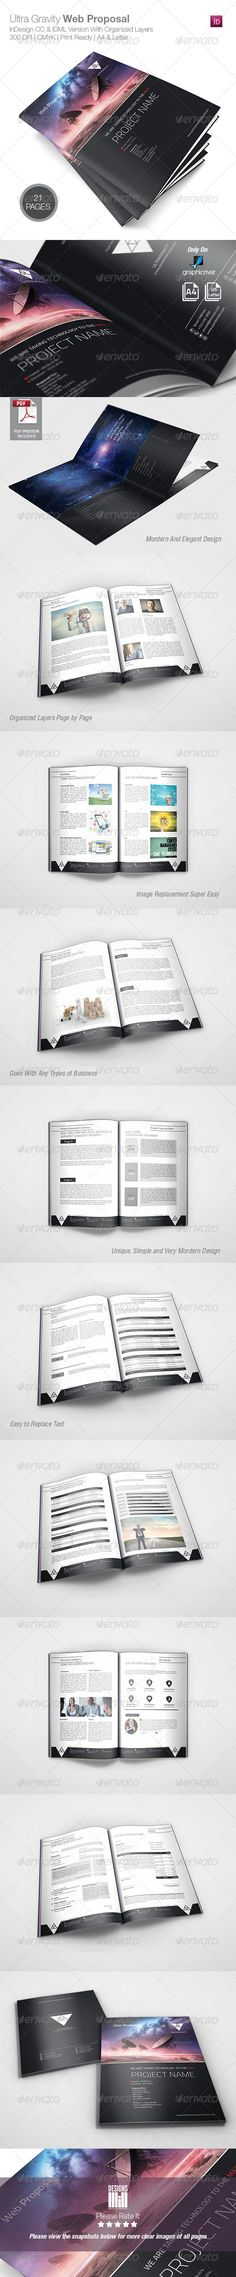 Proposal Template Proposal templates and Invoice layout - generic business proposal template